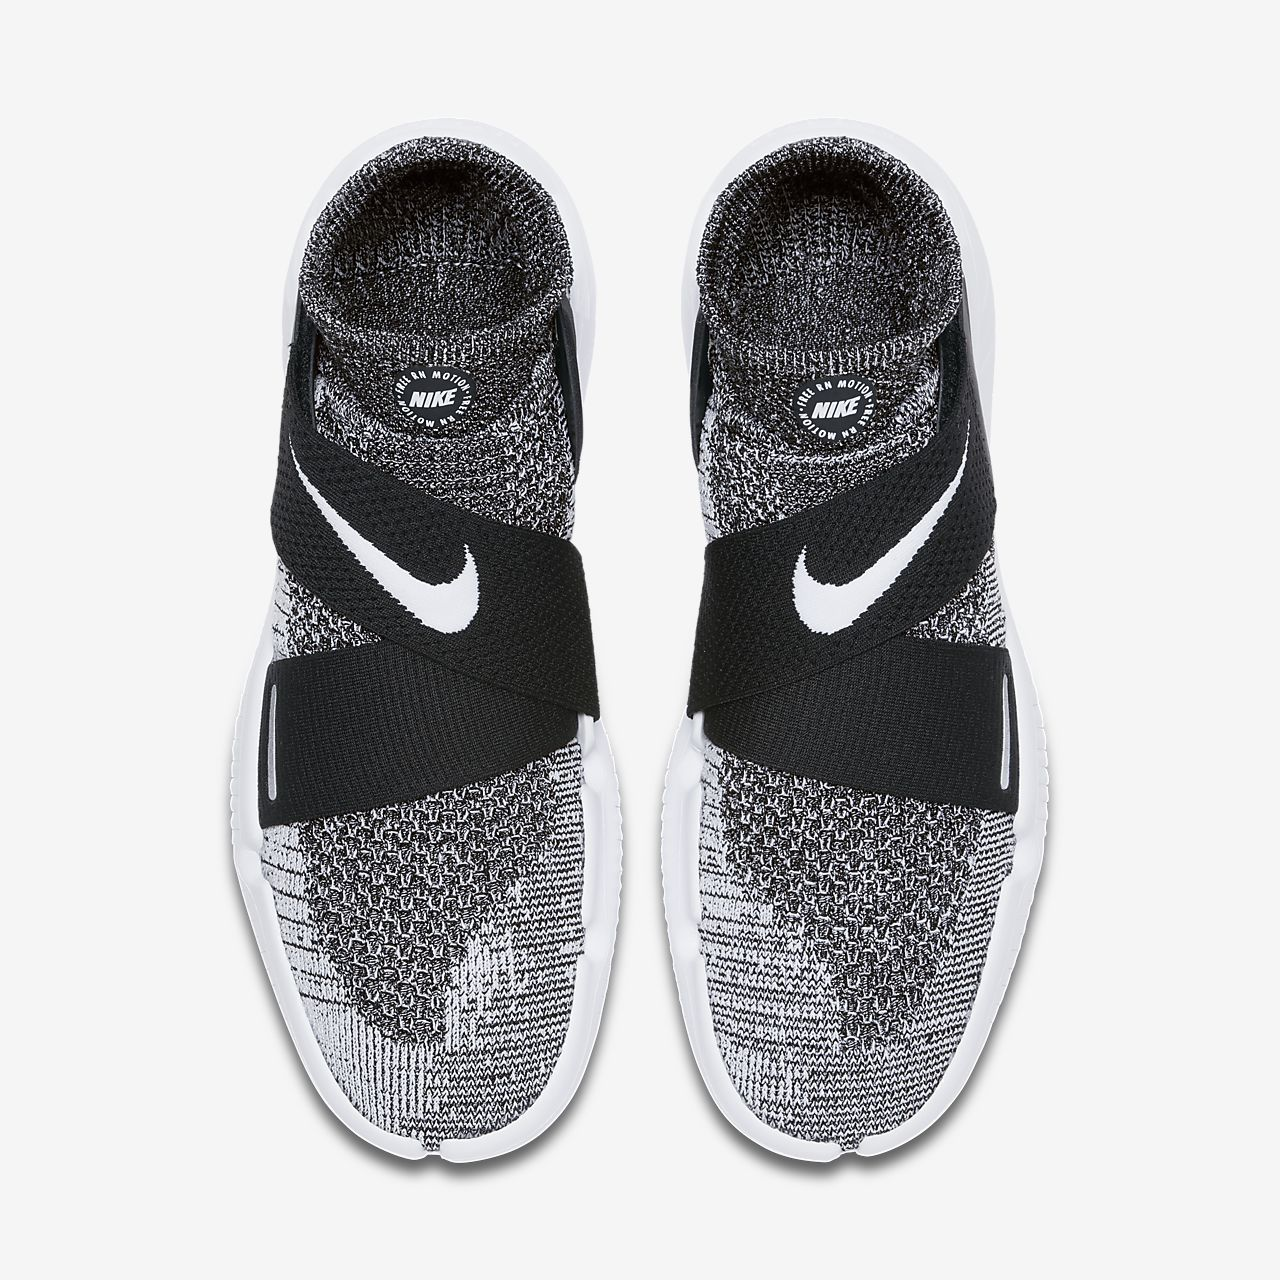 ... Nike Free RN Motion Flyknit 2018 Men's Running Shoe